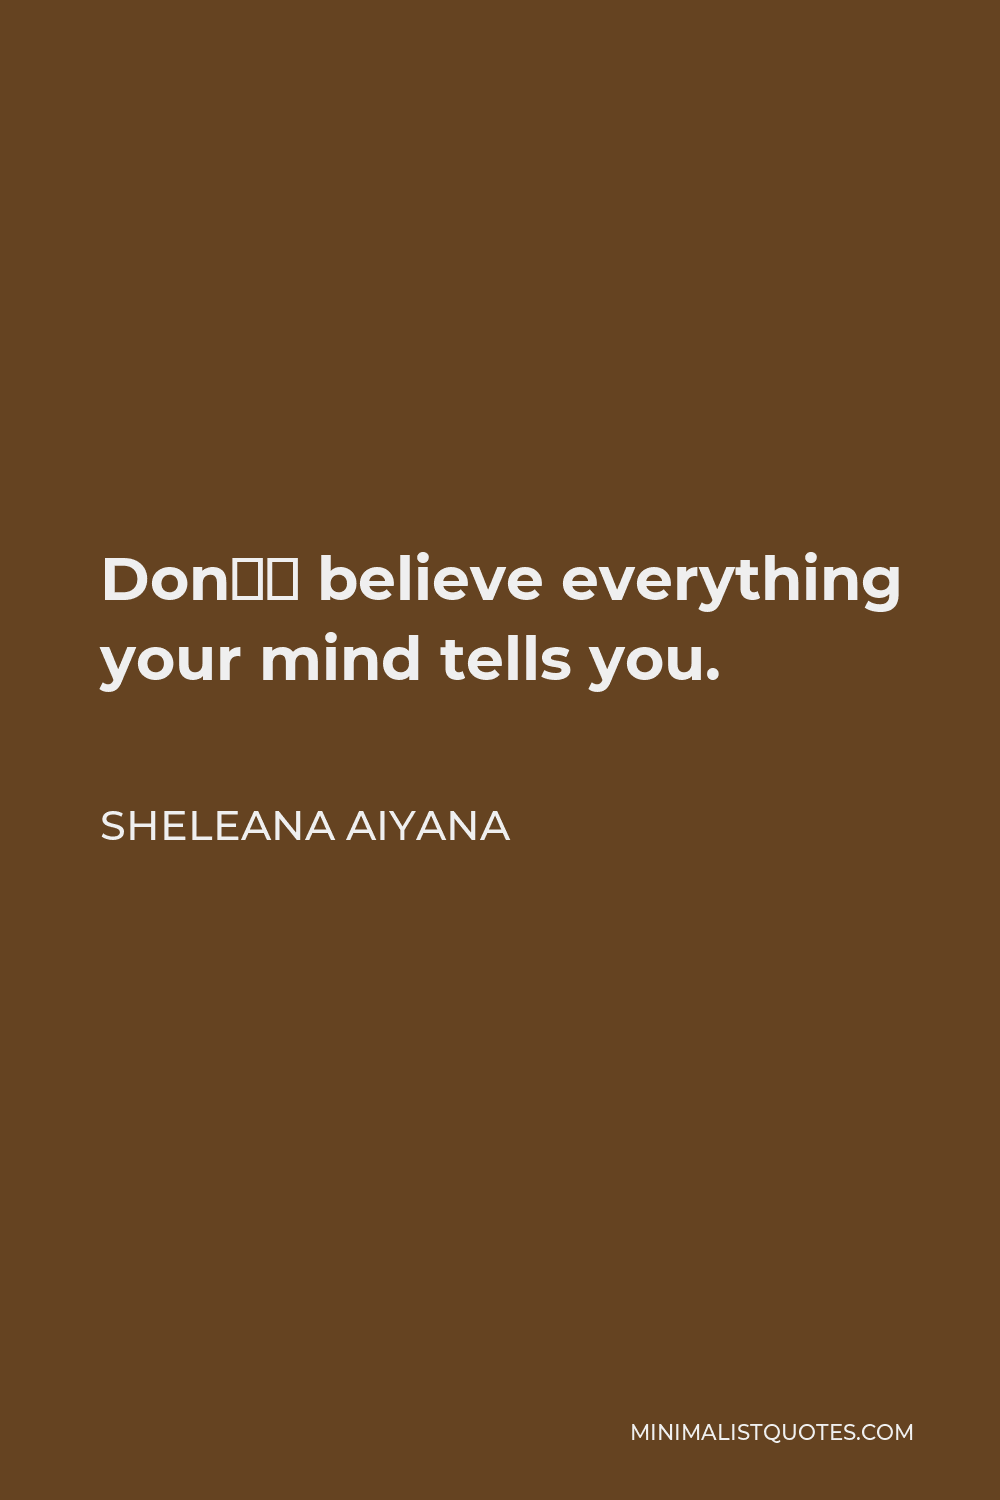 Sheleana Aiyana Quote - Don't believe everything your mind tells you.